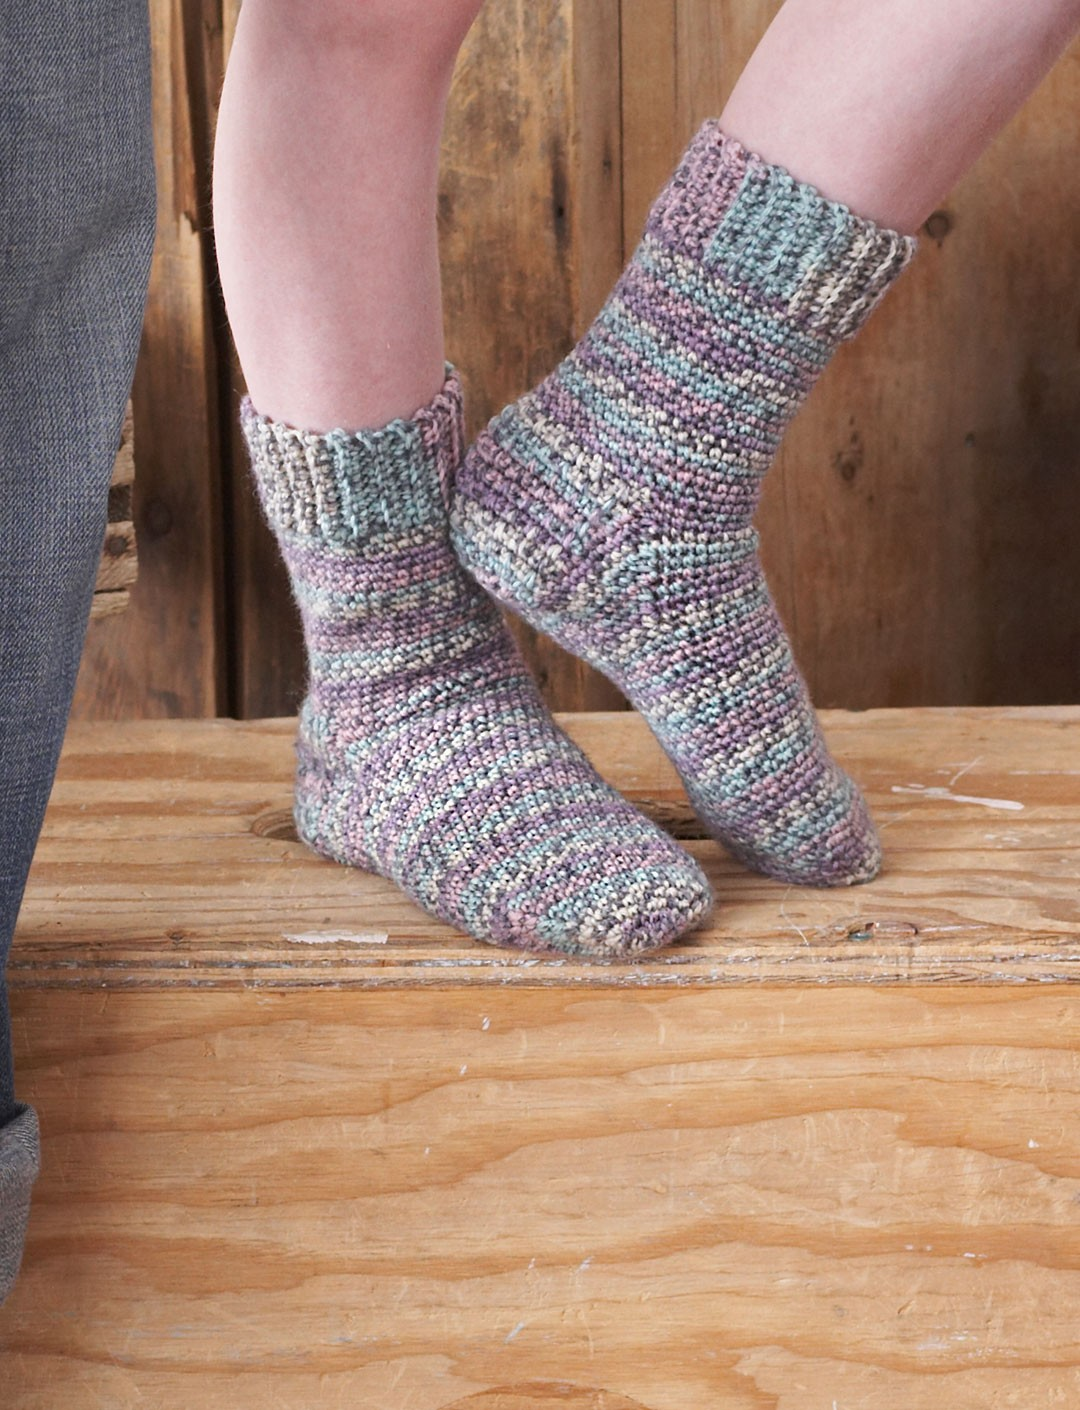 Sock crochet patterns yarnspirations family crochet socks bankloansurffo Image collections